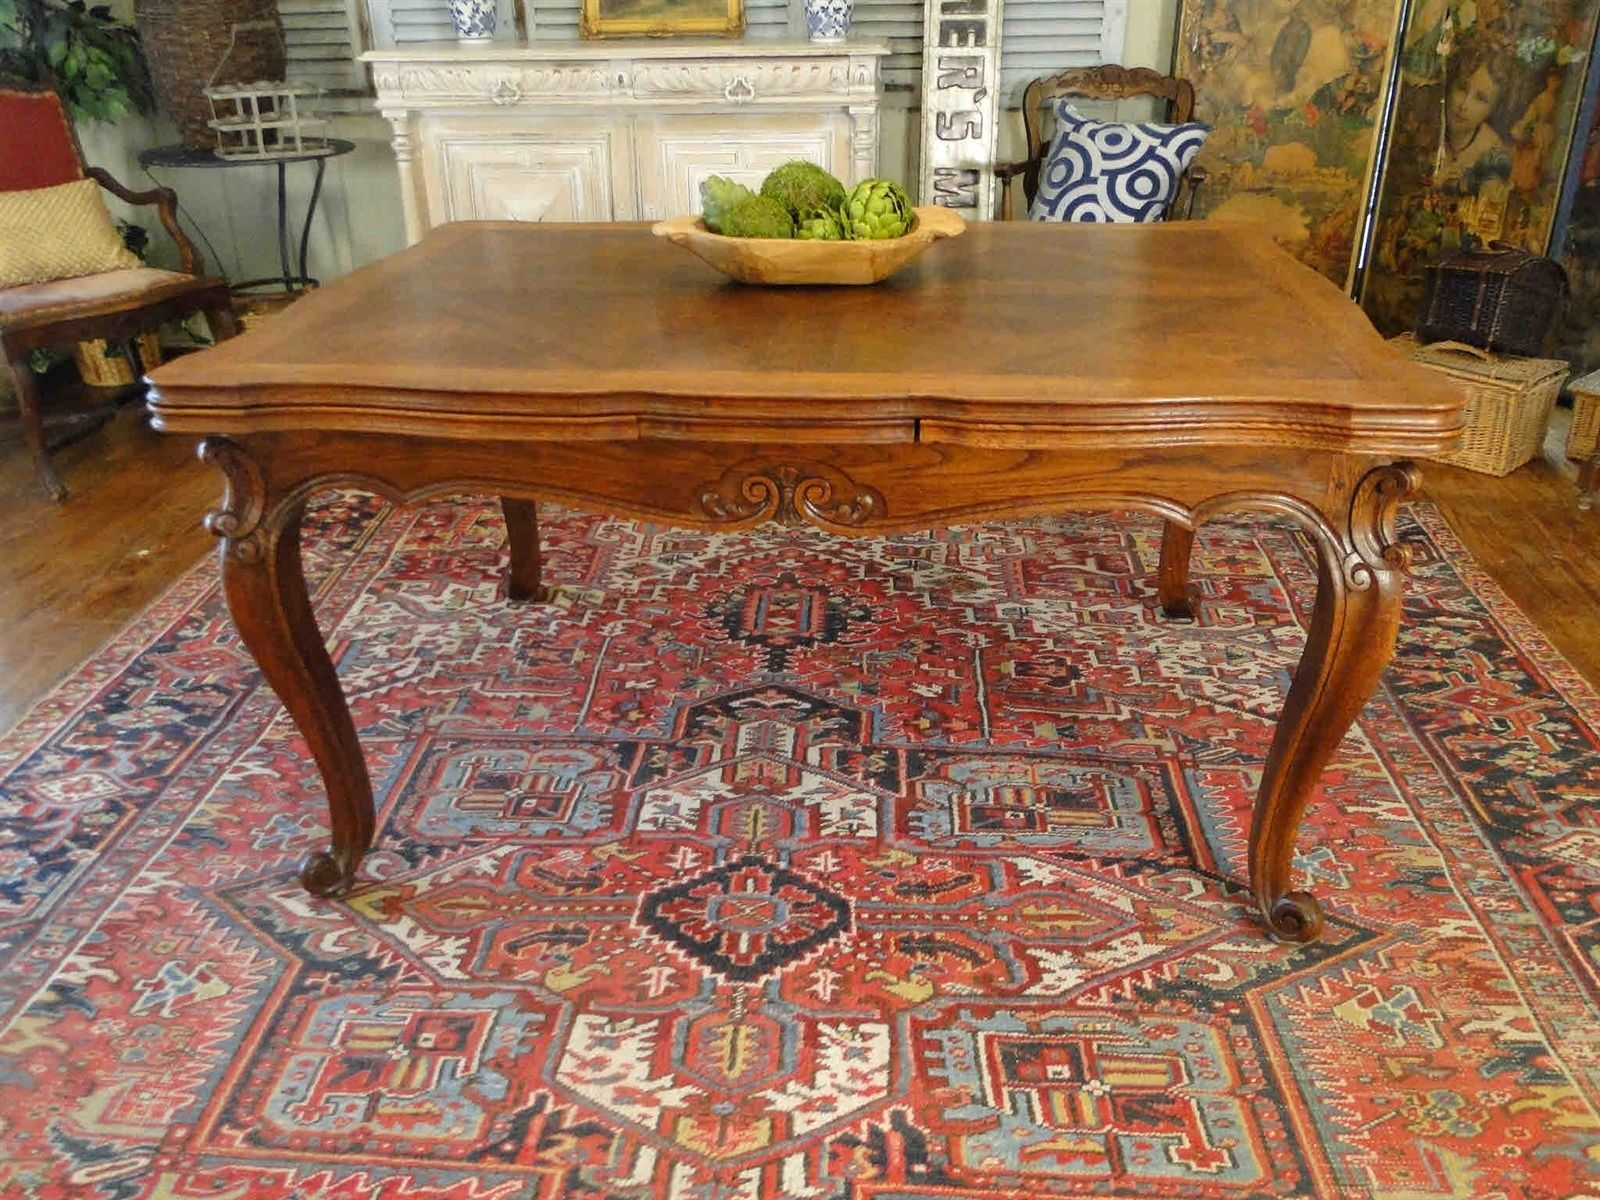 Antique French Country Oak Dining Table with Draw Leaf and Lovely